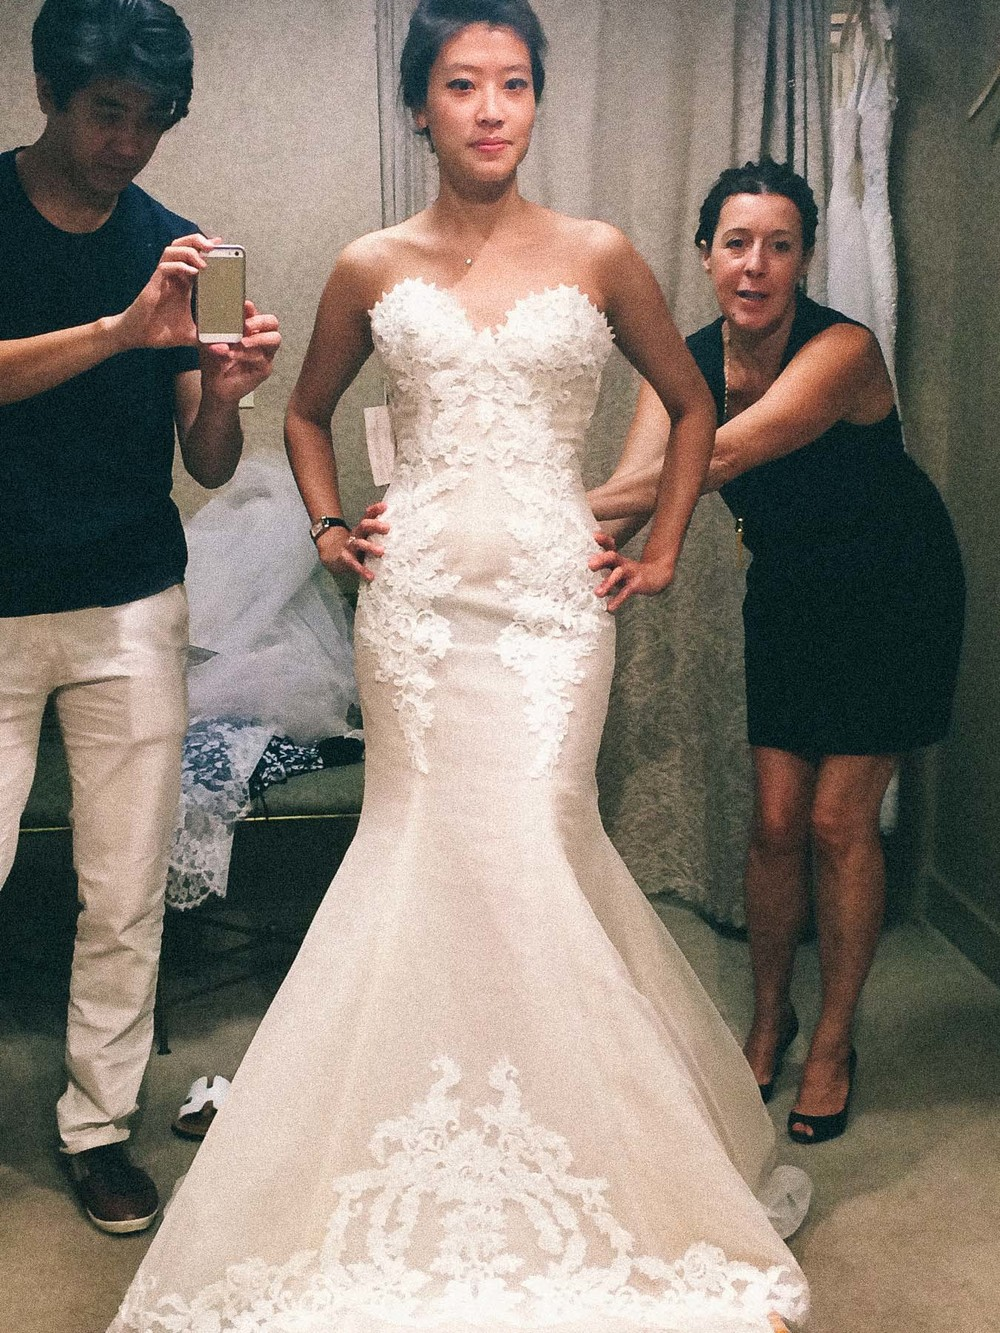 Best Wedding Dress Shopping With The Fiance U Jenny Musing Traditions